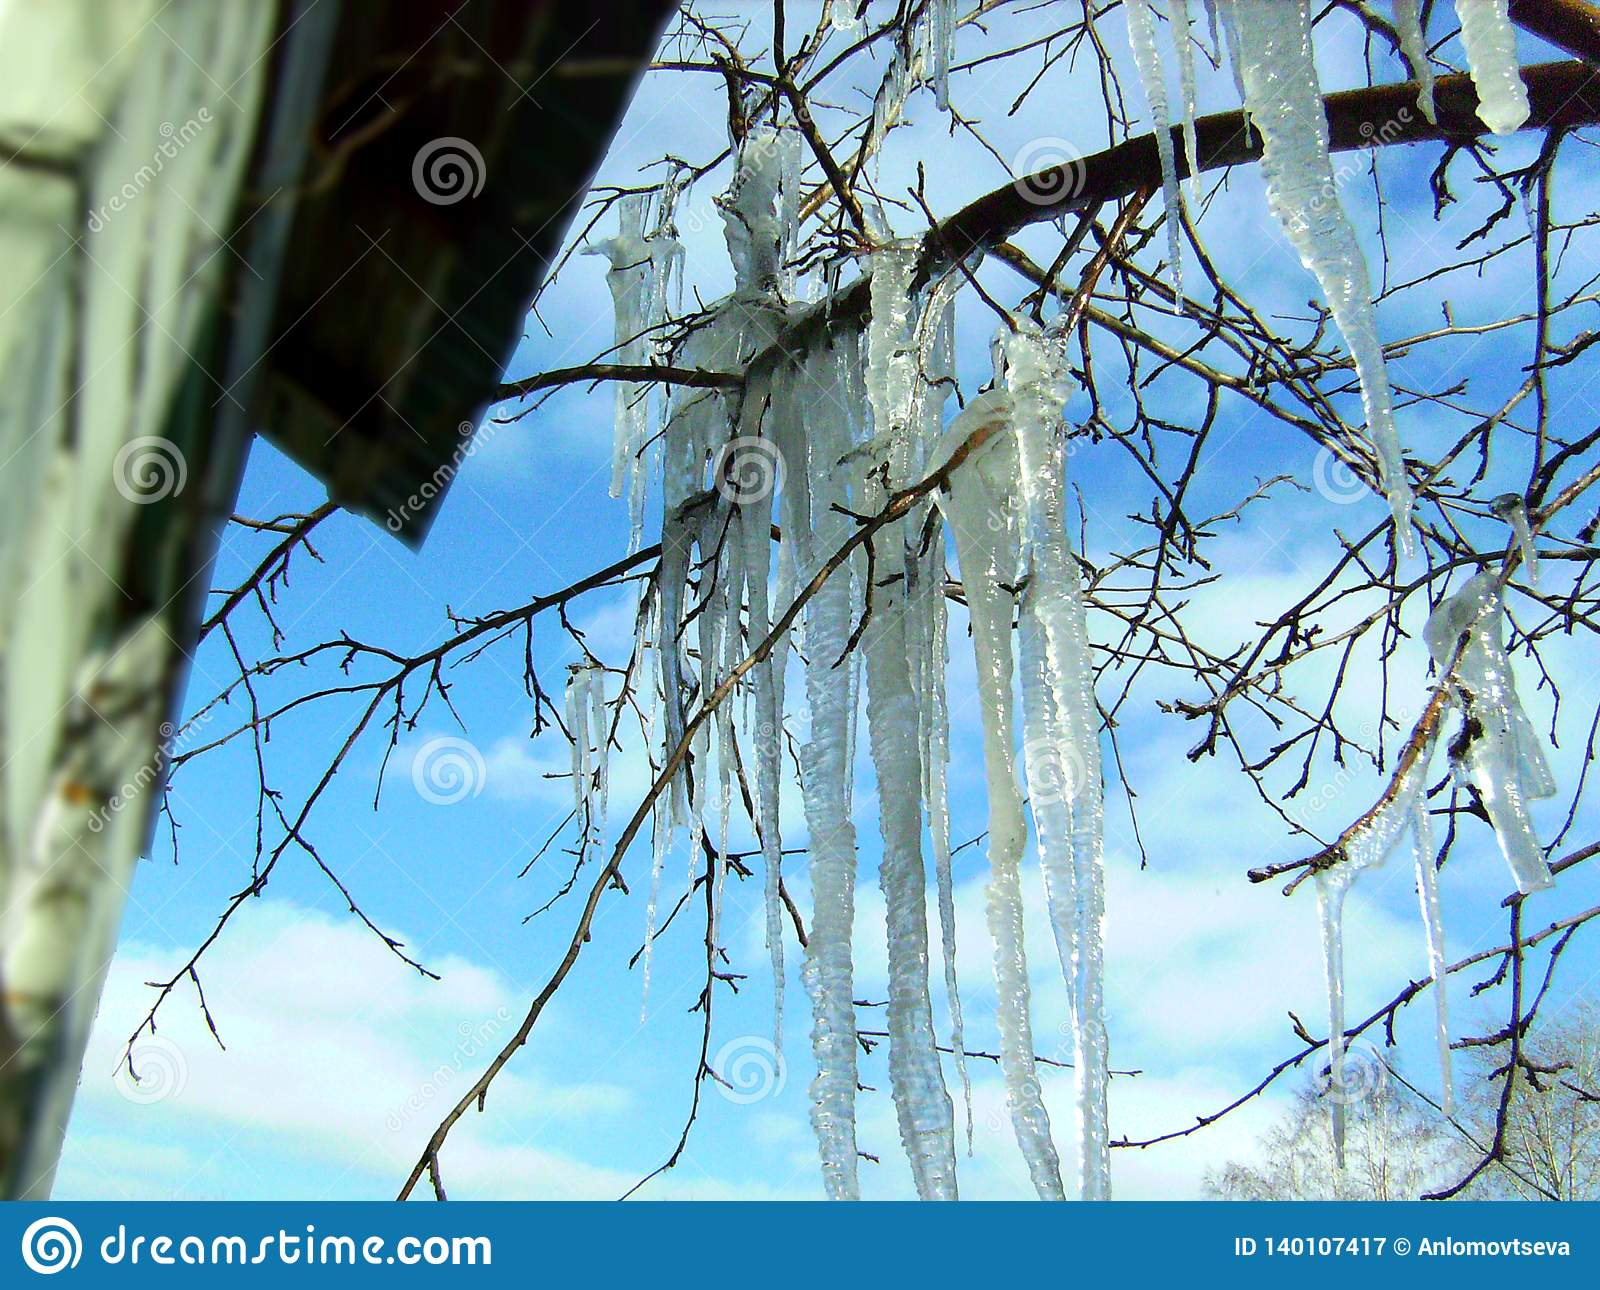 Thaw big icicles